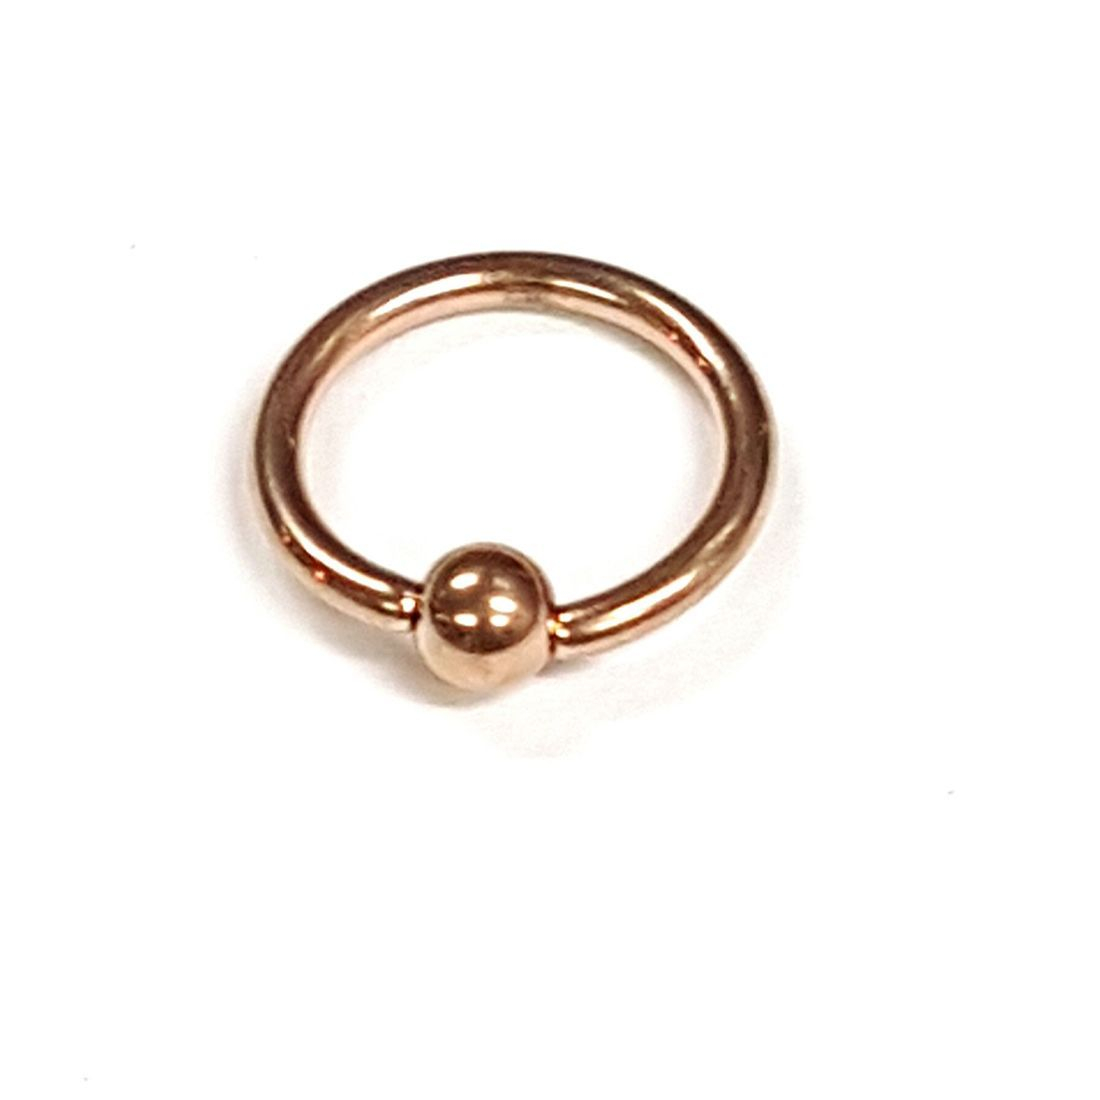 1.2mm x 8mm Rose Gold Ball Closure Ring    available at Kazbah online and our Leicester City Centre Shop